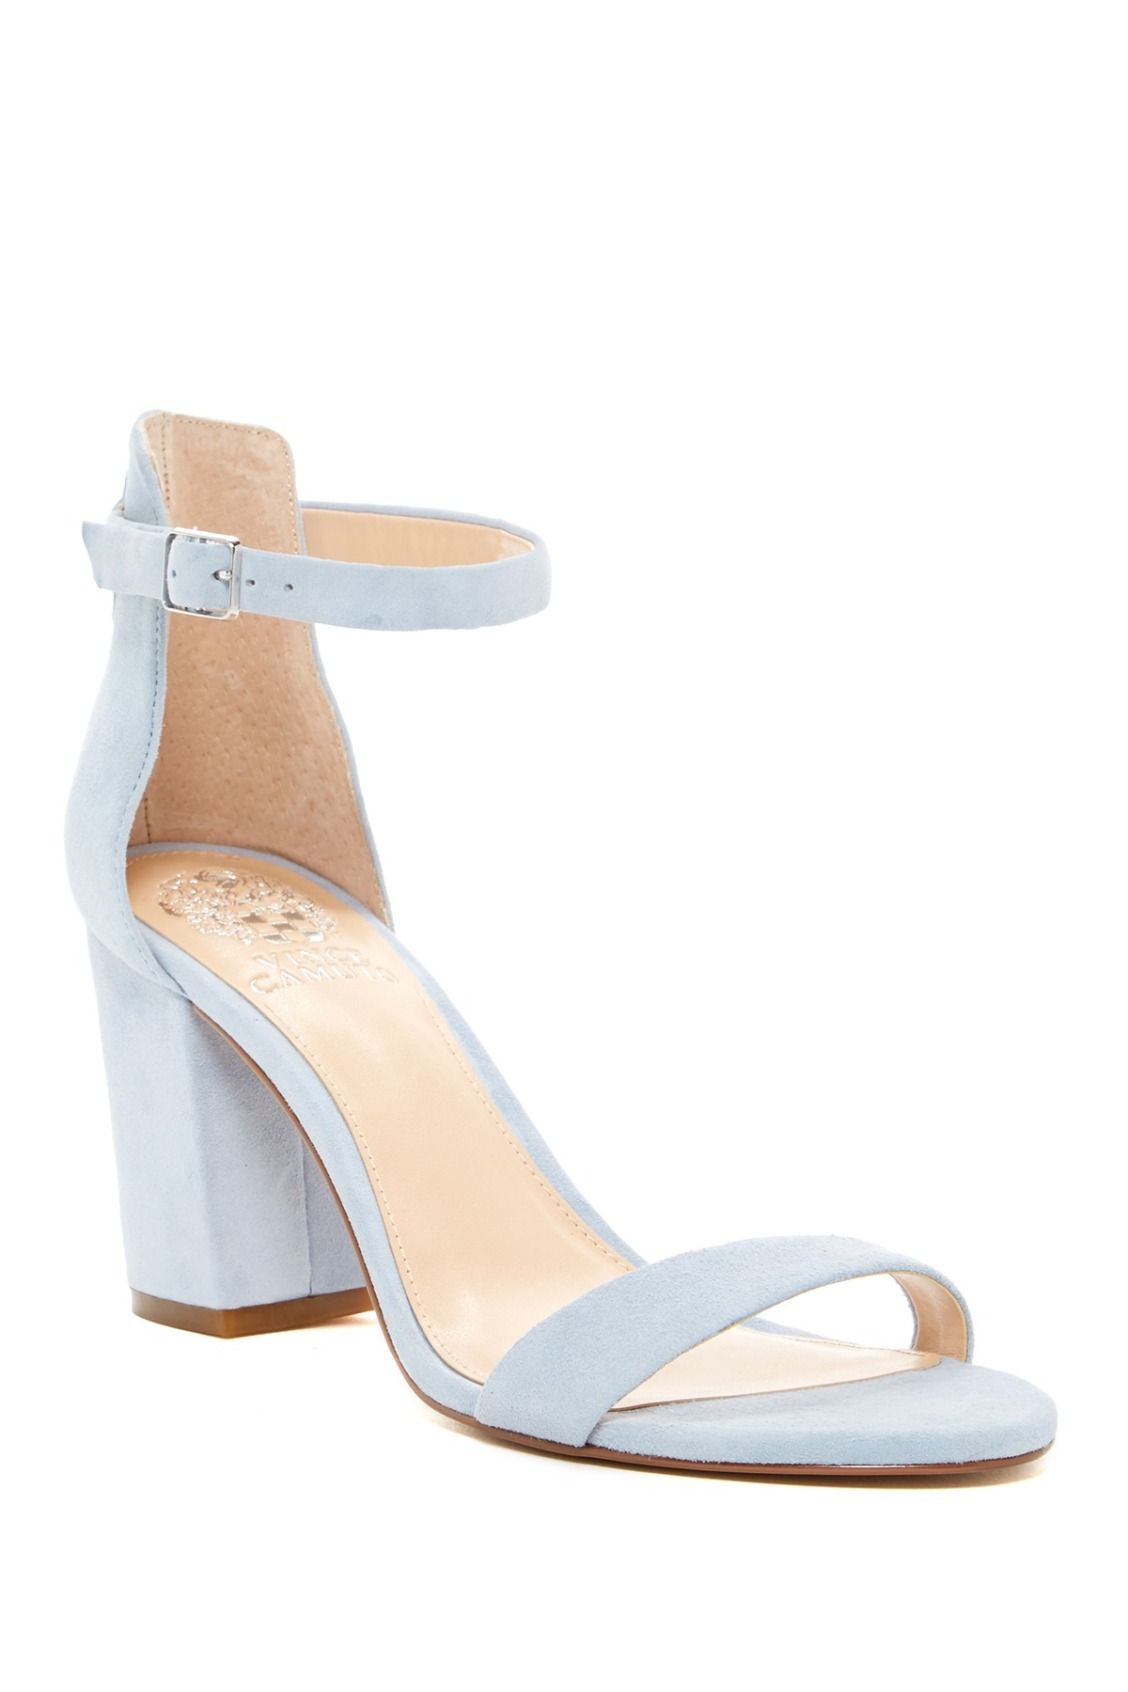 5c609dbc25 Pale blue Vince Camuto Beah Block Heel Sandals | Shoes for Days ...